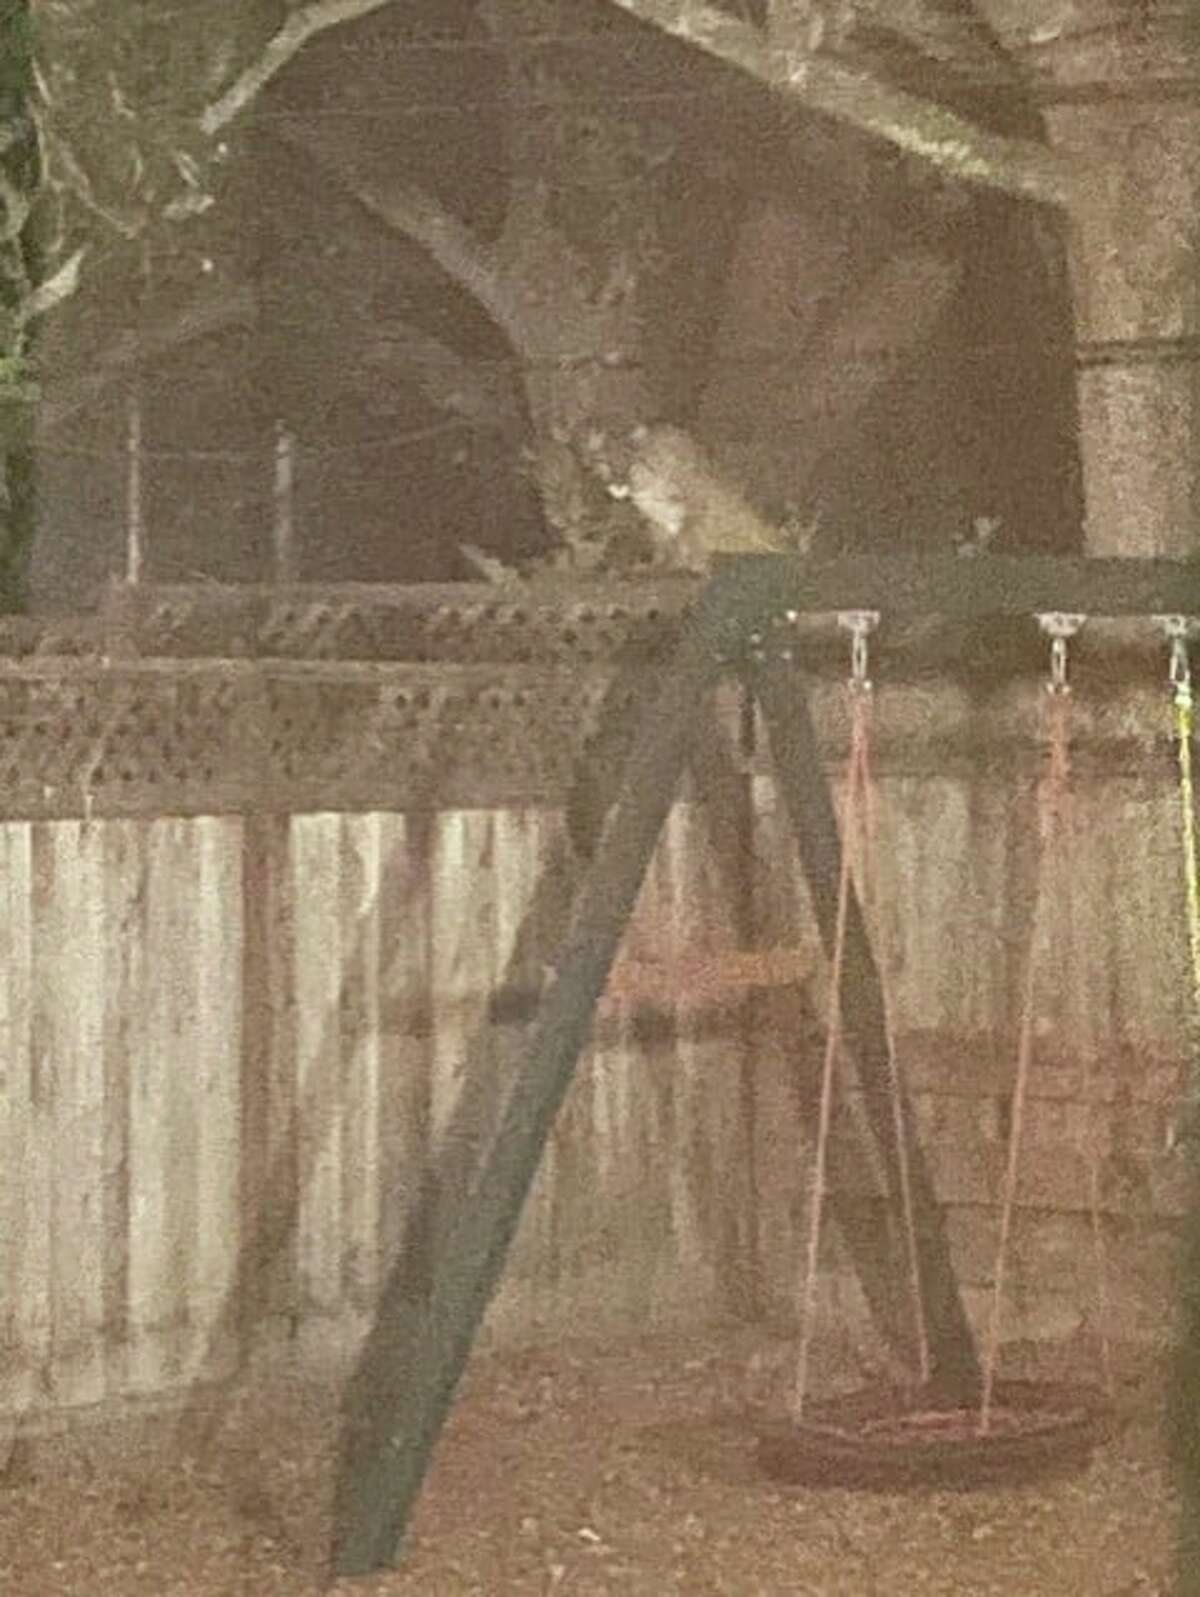 The San Mateo Police Department shared a photo taken of the mountain lion, which was spotted behind a homeby a resident who saw it standing near a recently killed raccoon.